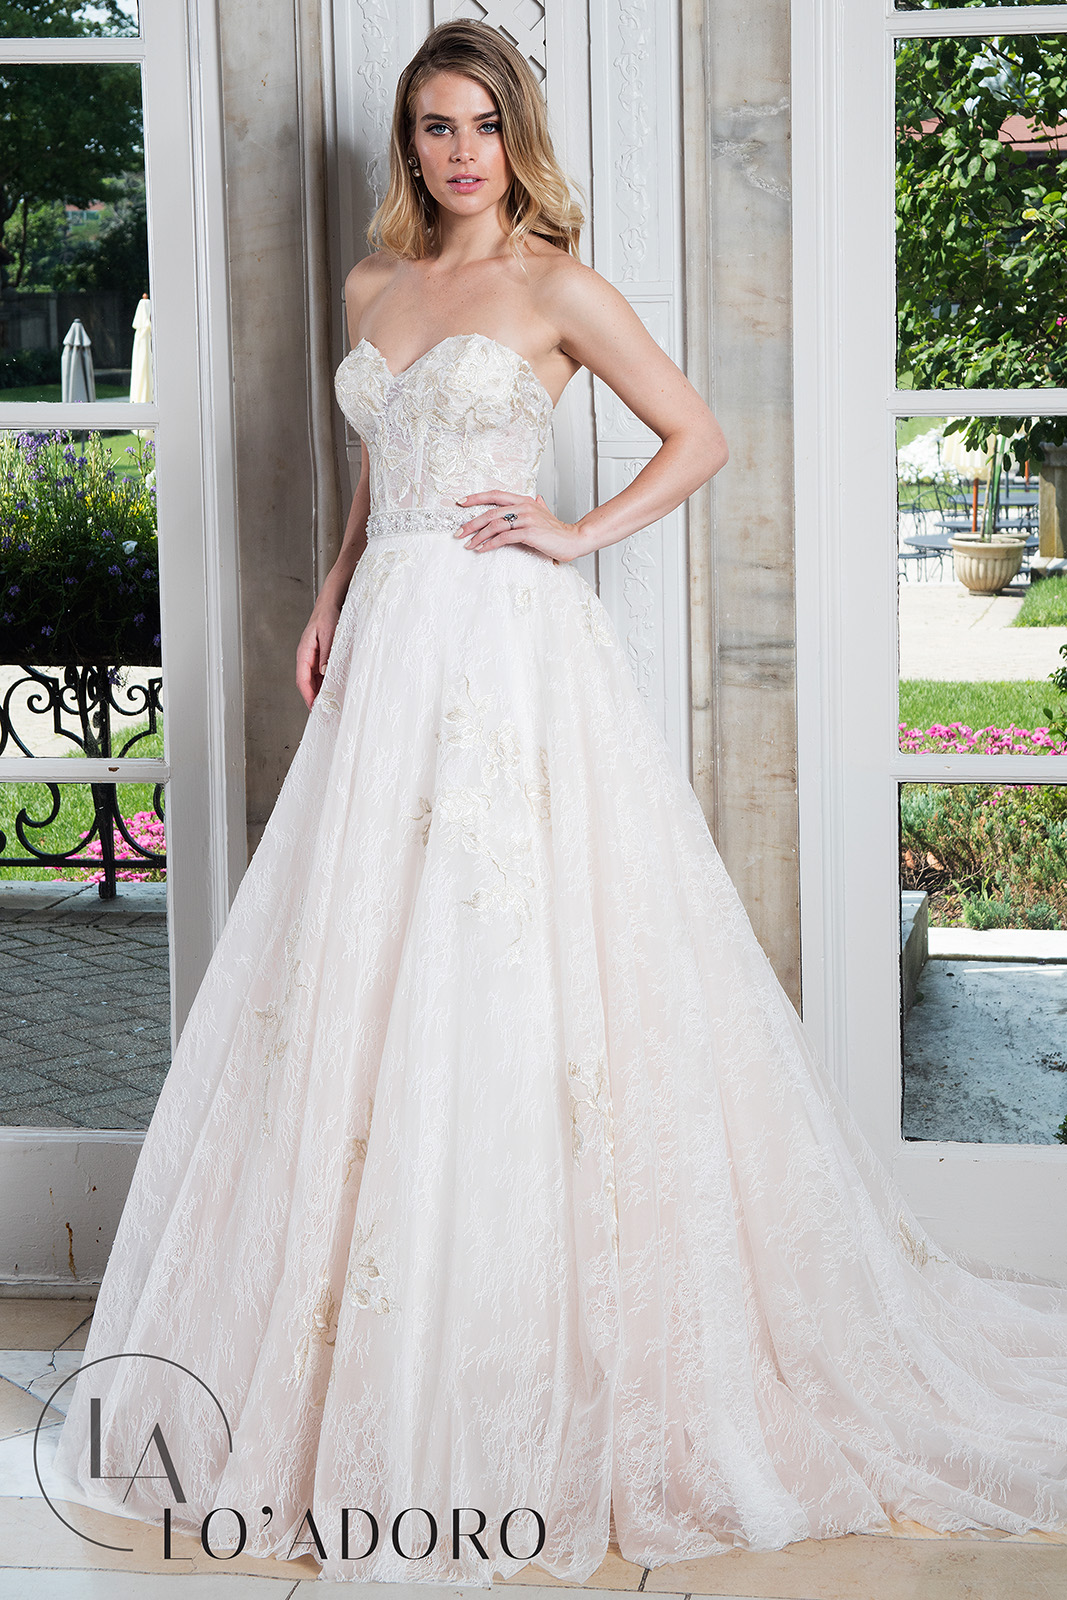 Sweetheart Ball Gowns Lo' Adoro Bridal in White Color